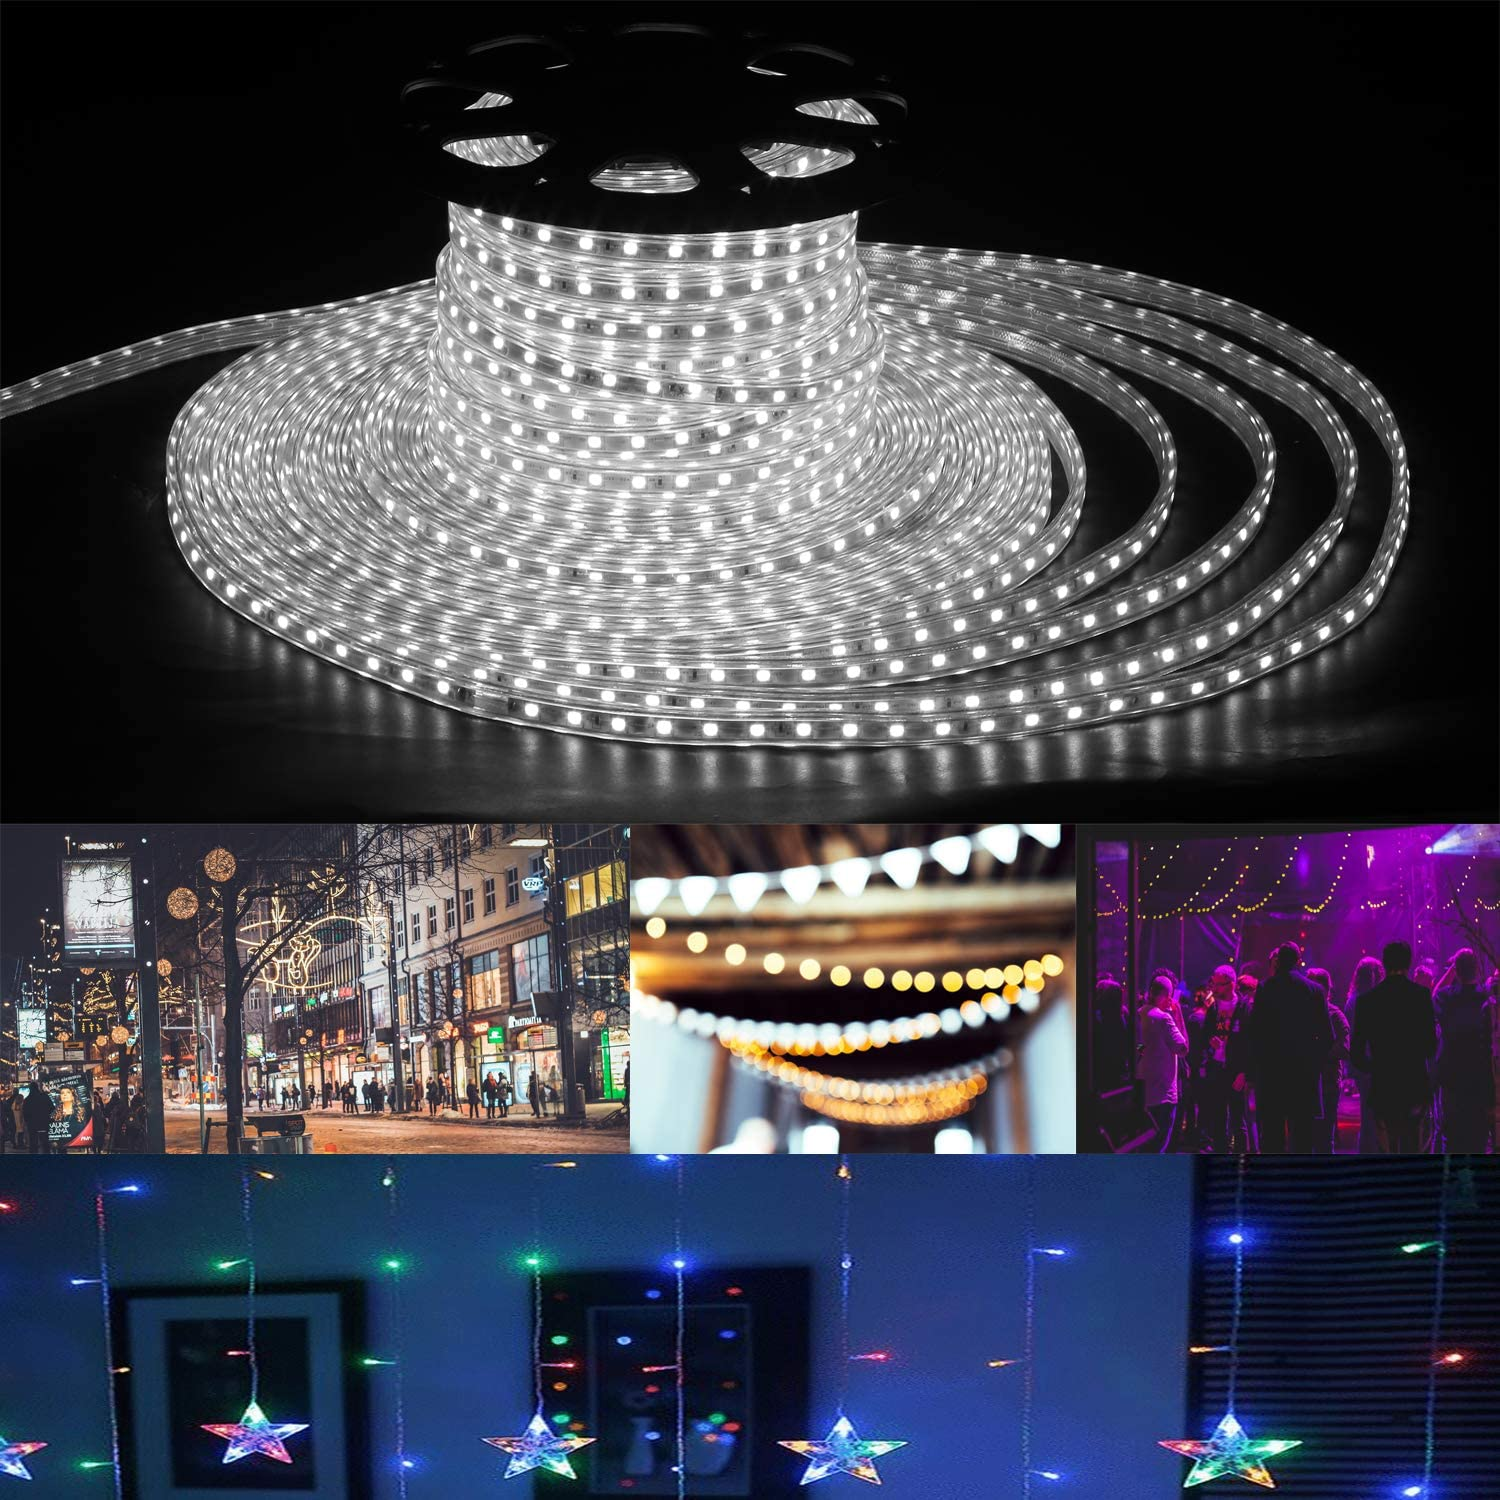 OVASTLKUY 150FT LED Strip Lights, LED Rope Lights SMD5050 with 2700 for for Indoor Wedding Christmas Party (Cold White)